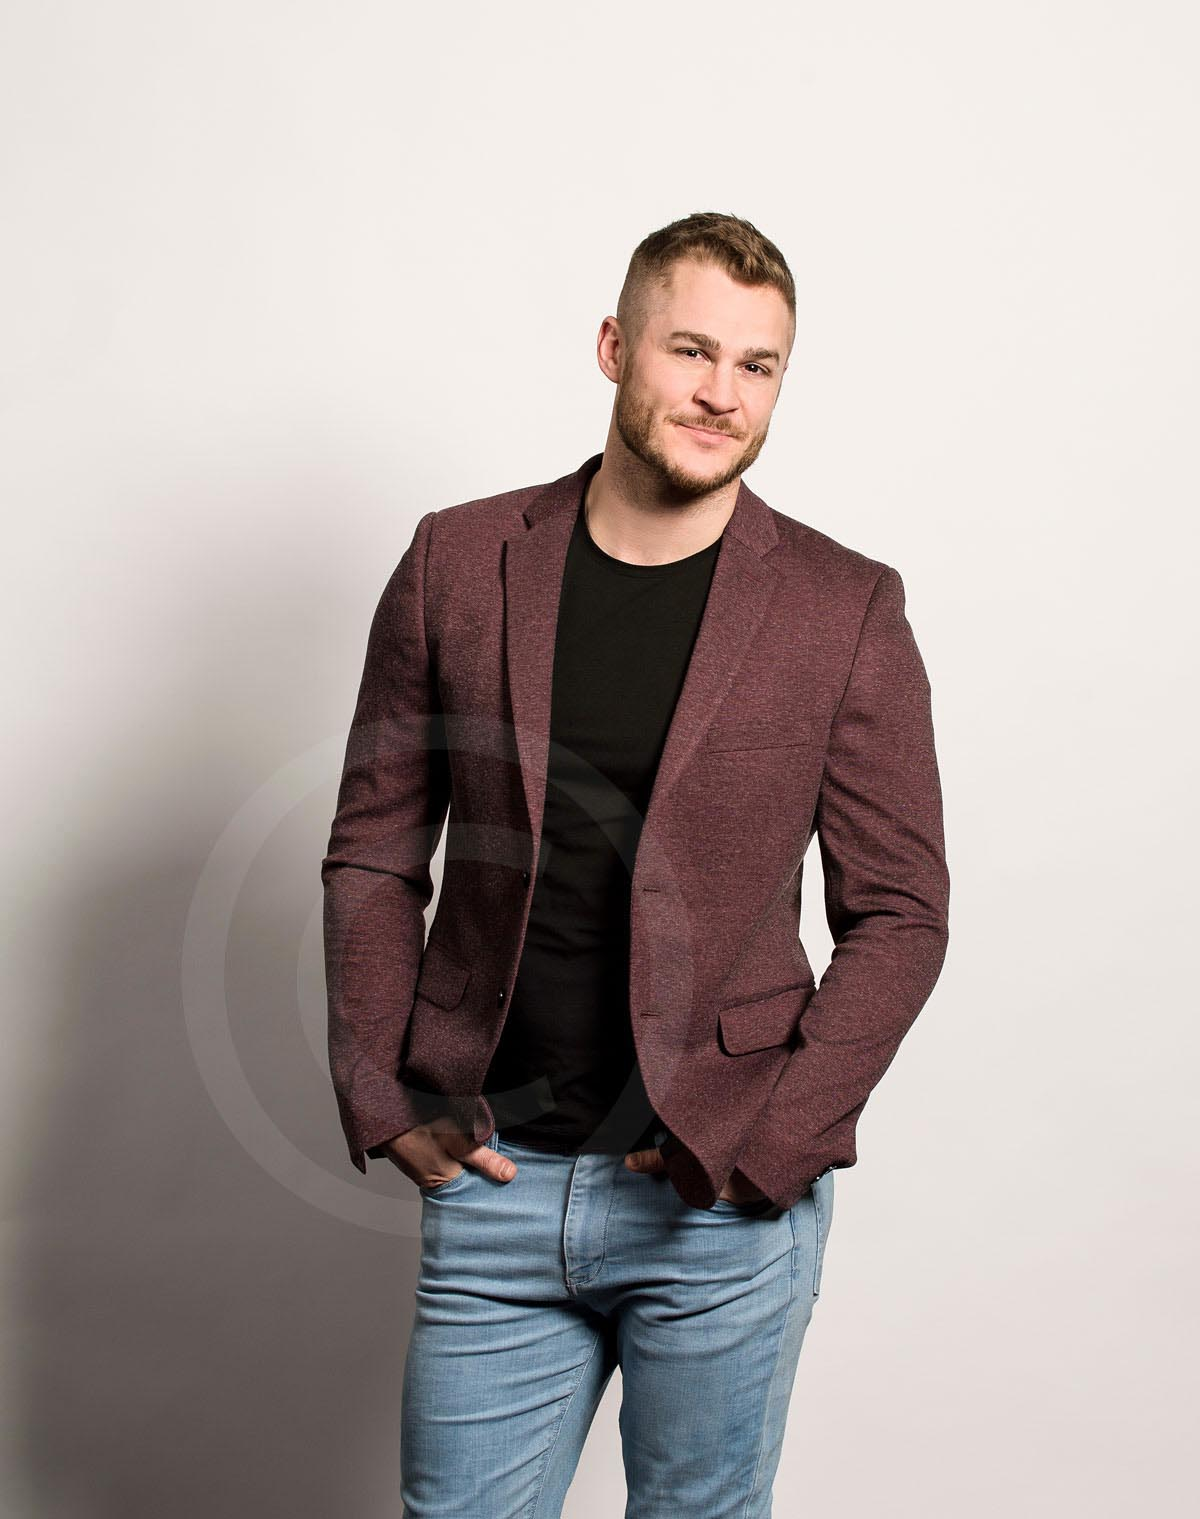 AustinArmacost2-celebrity-photographer-manchester-emmakenny-editorial-7555